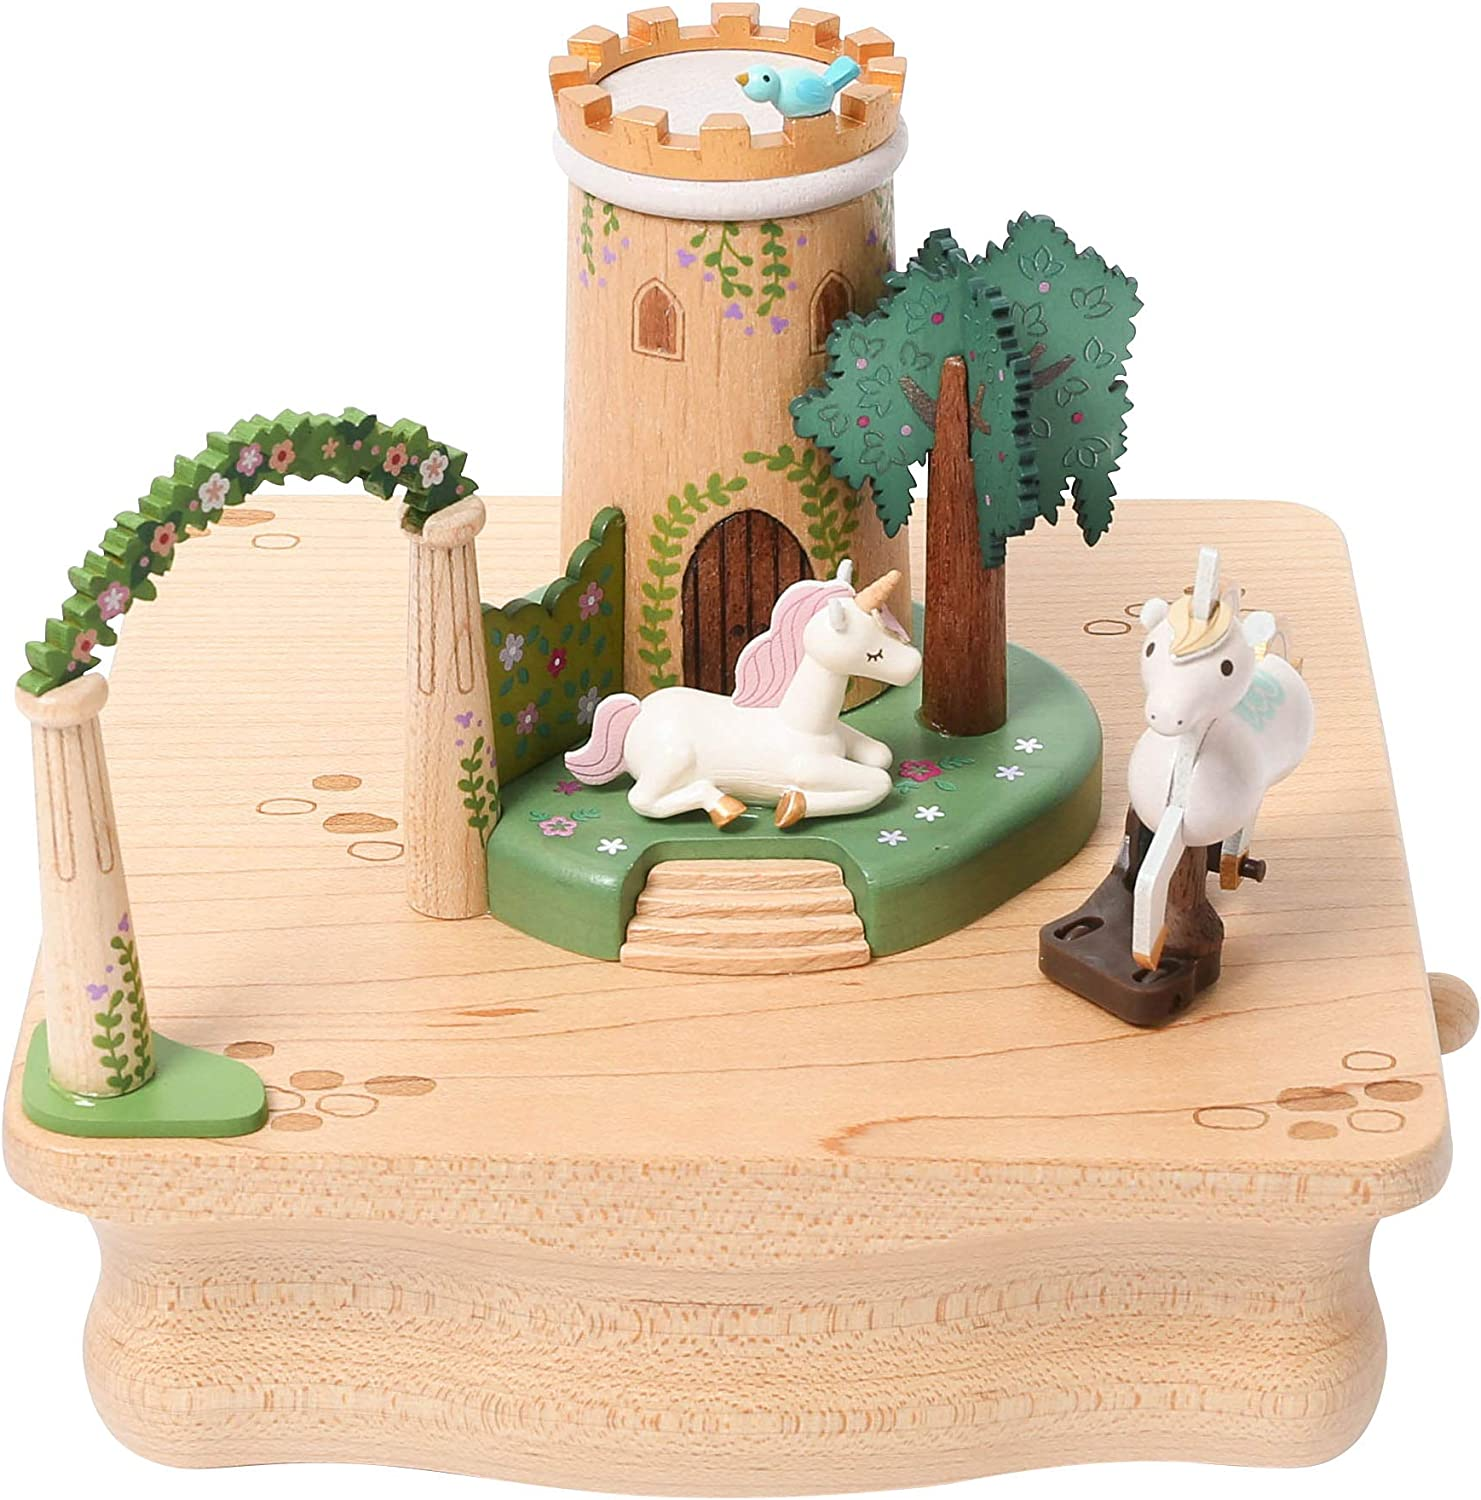 WOODERFUL LIFE Wooden Music Box | Castle Garden | 1060350 | Nature Wood Color Hand Made Unicorn Elaborate Design Beautiful Gift with Small Moving Magnetic Part | Plays - Fruhlingslied